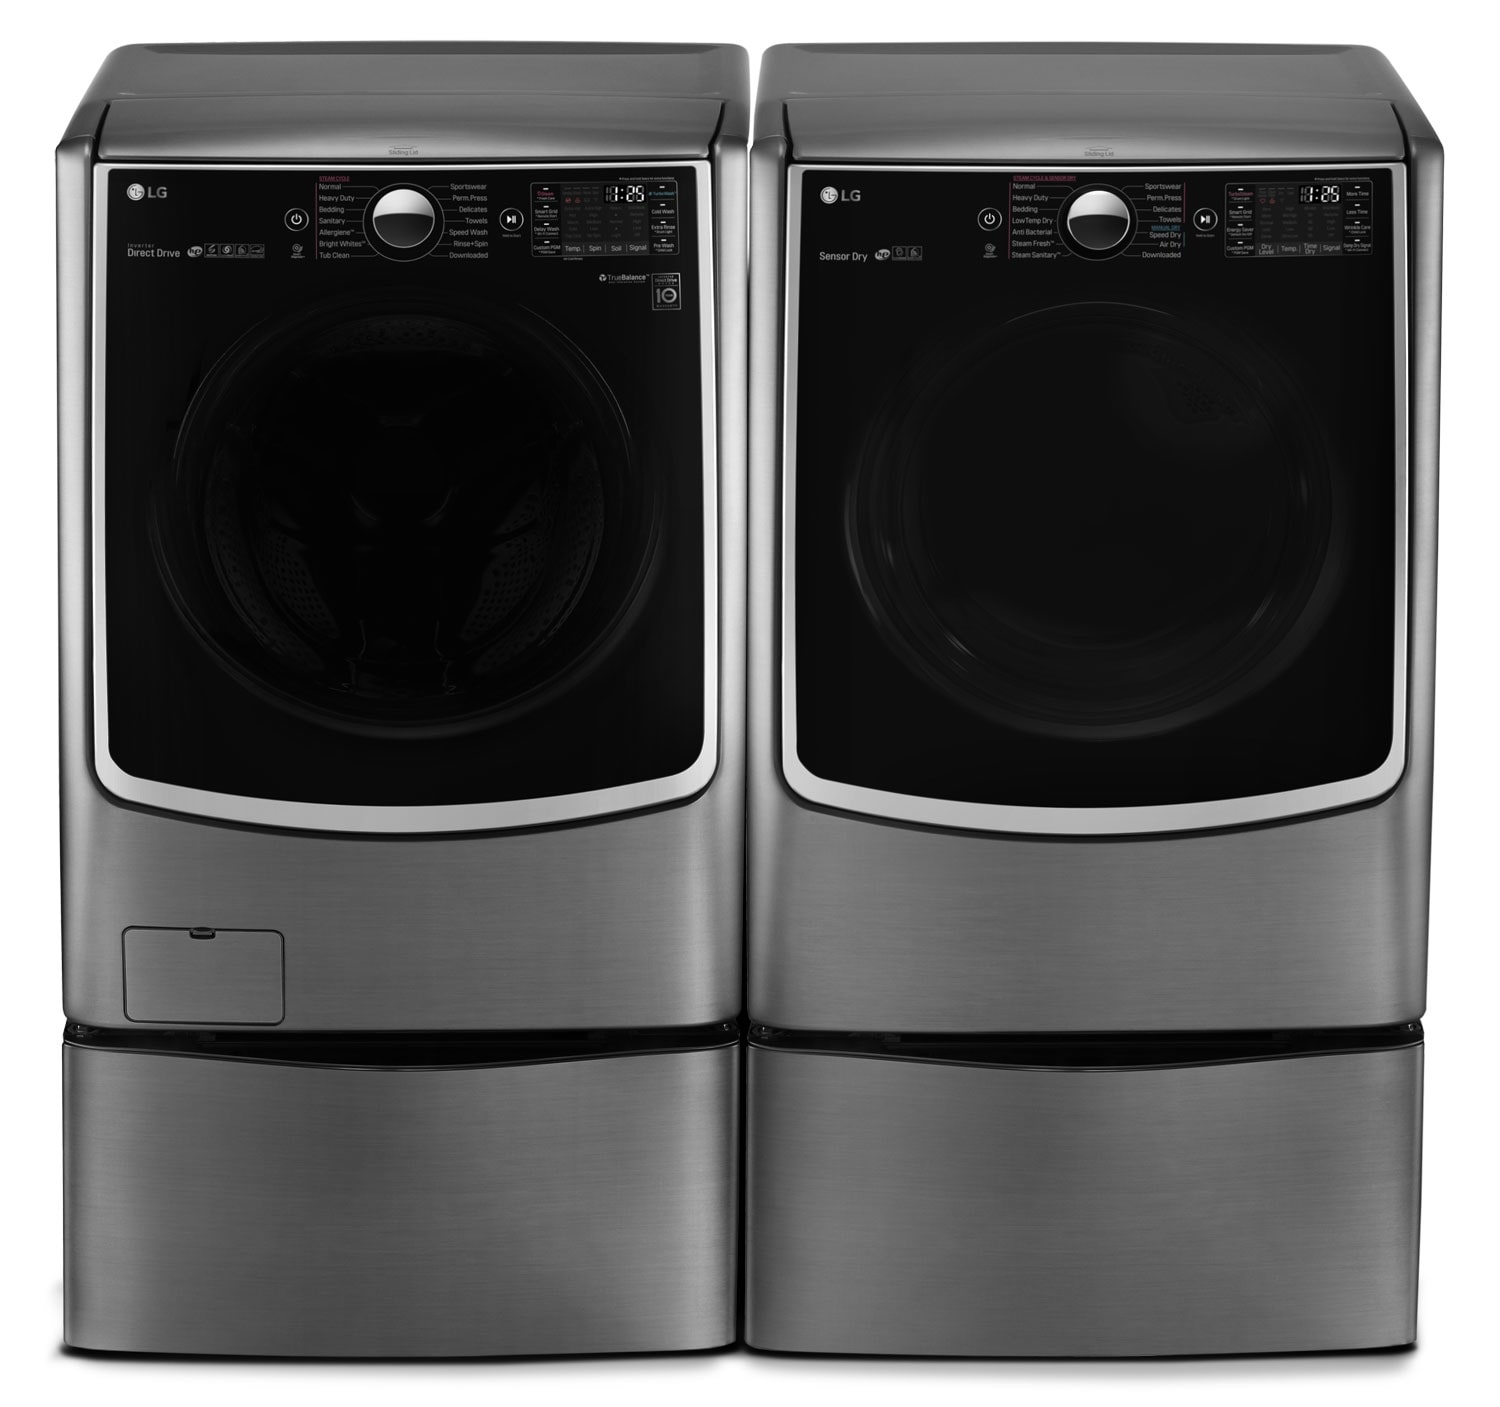 Appliance Accessories - LG 5.2 Cu. Ft. Front-Load Washer, Pedestal Washer and 7.4 Cu. Ft. Gas Dryer – Graphite Steel